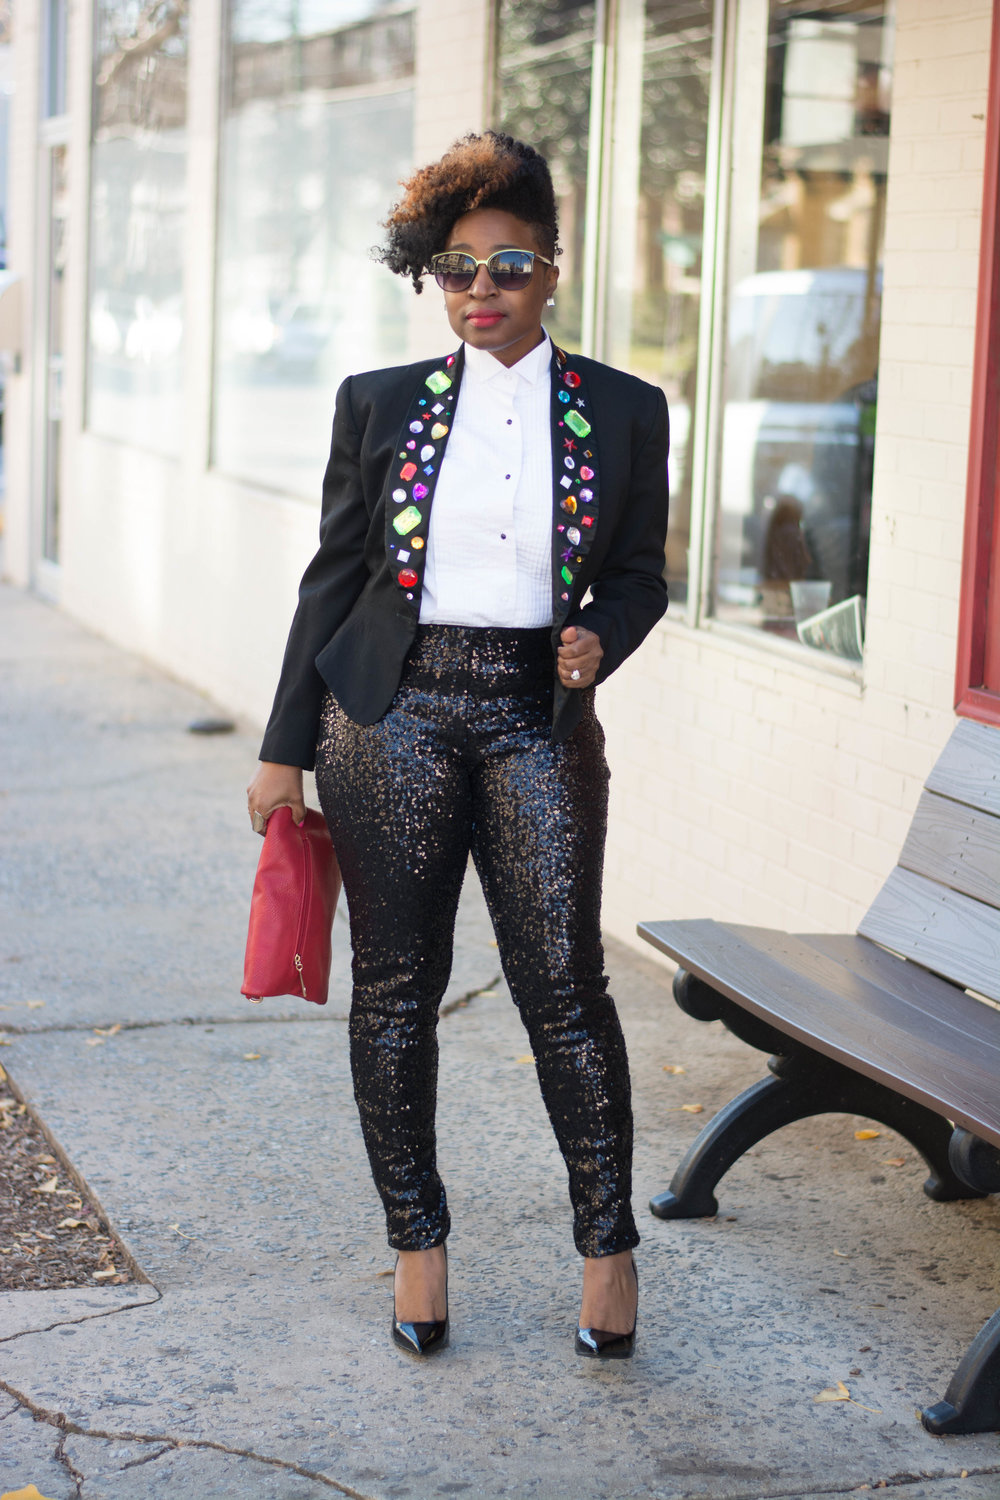 New Years Eve: Tuxedo Shirt + Sequin Leggings -